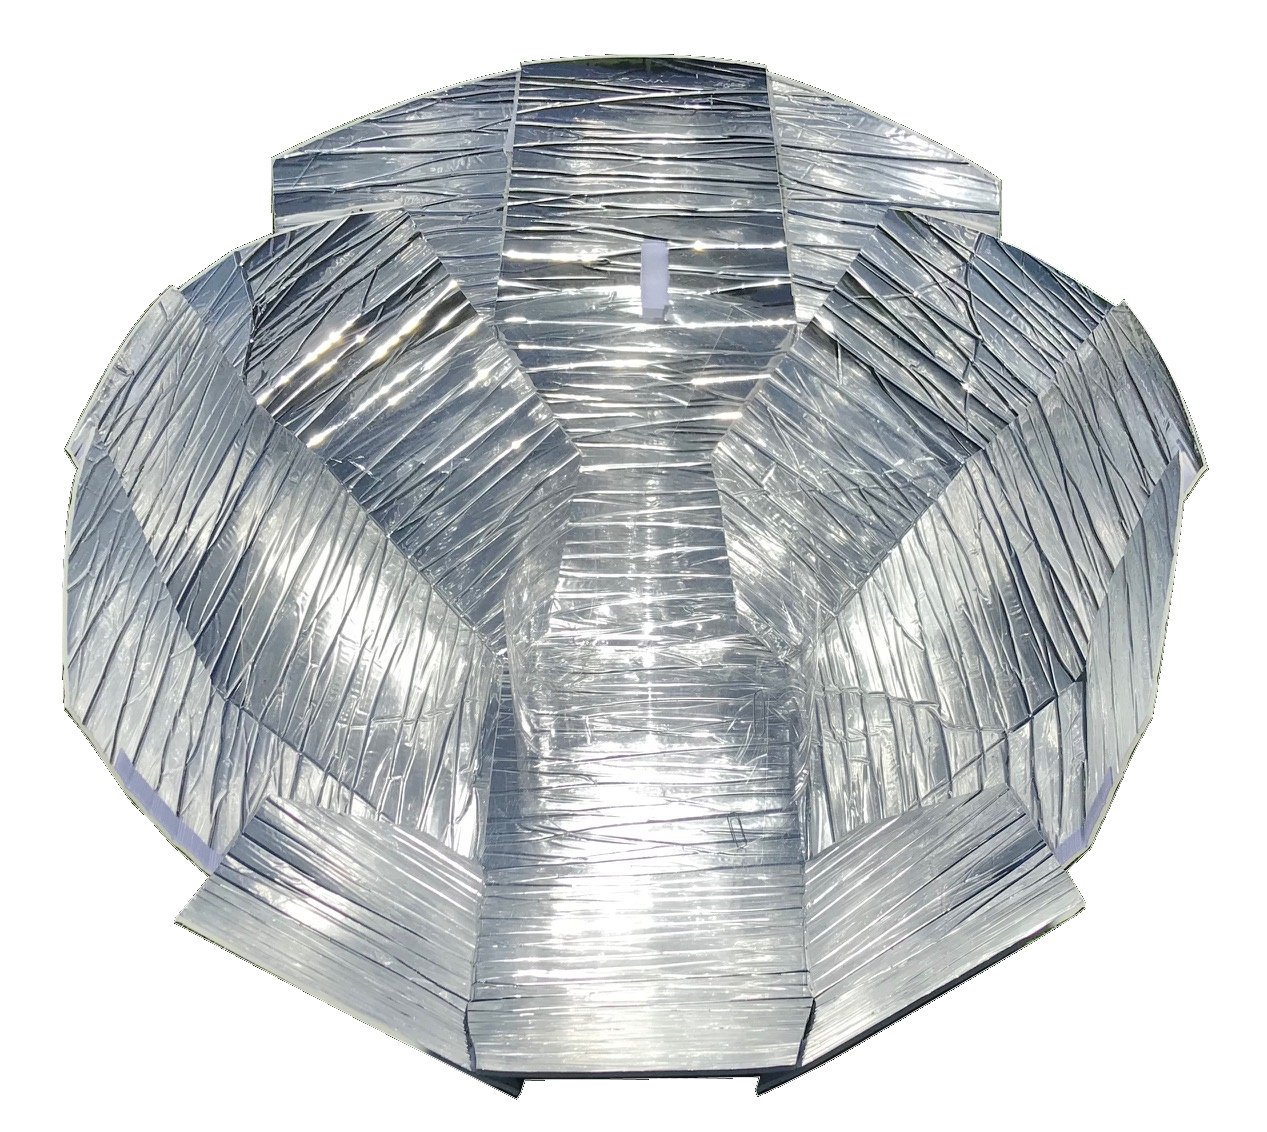 Haines 2.0 Solar Cooker by Haines